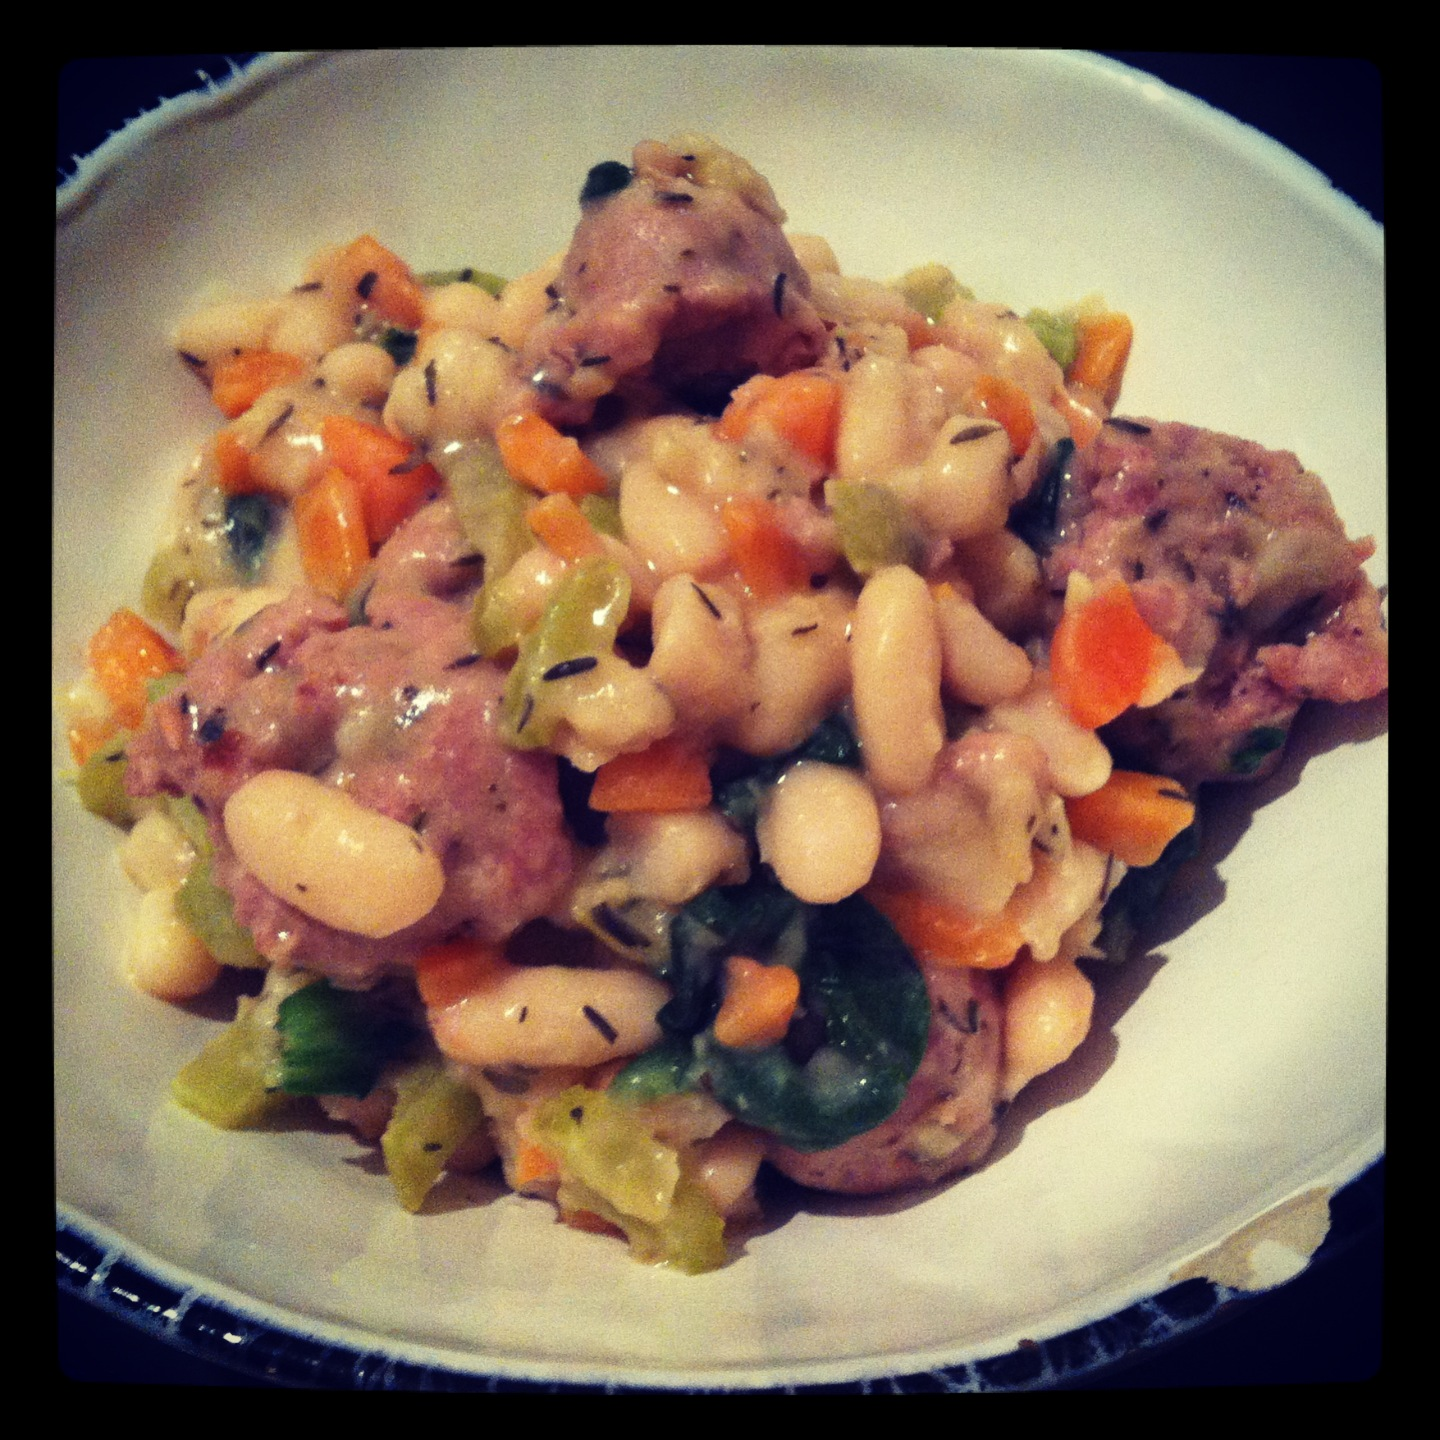 Cannellini Bean & Italian Sausage Stew - The Tiny Italian